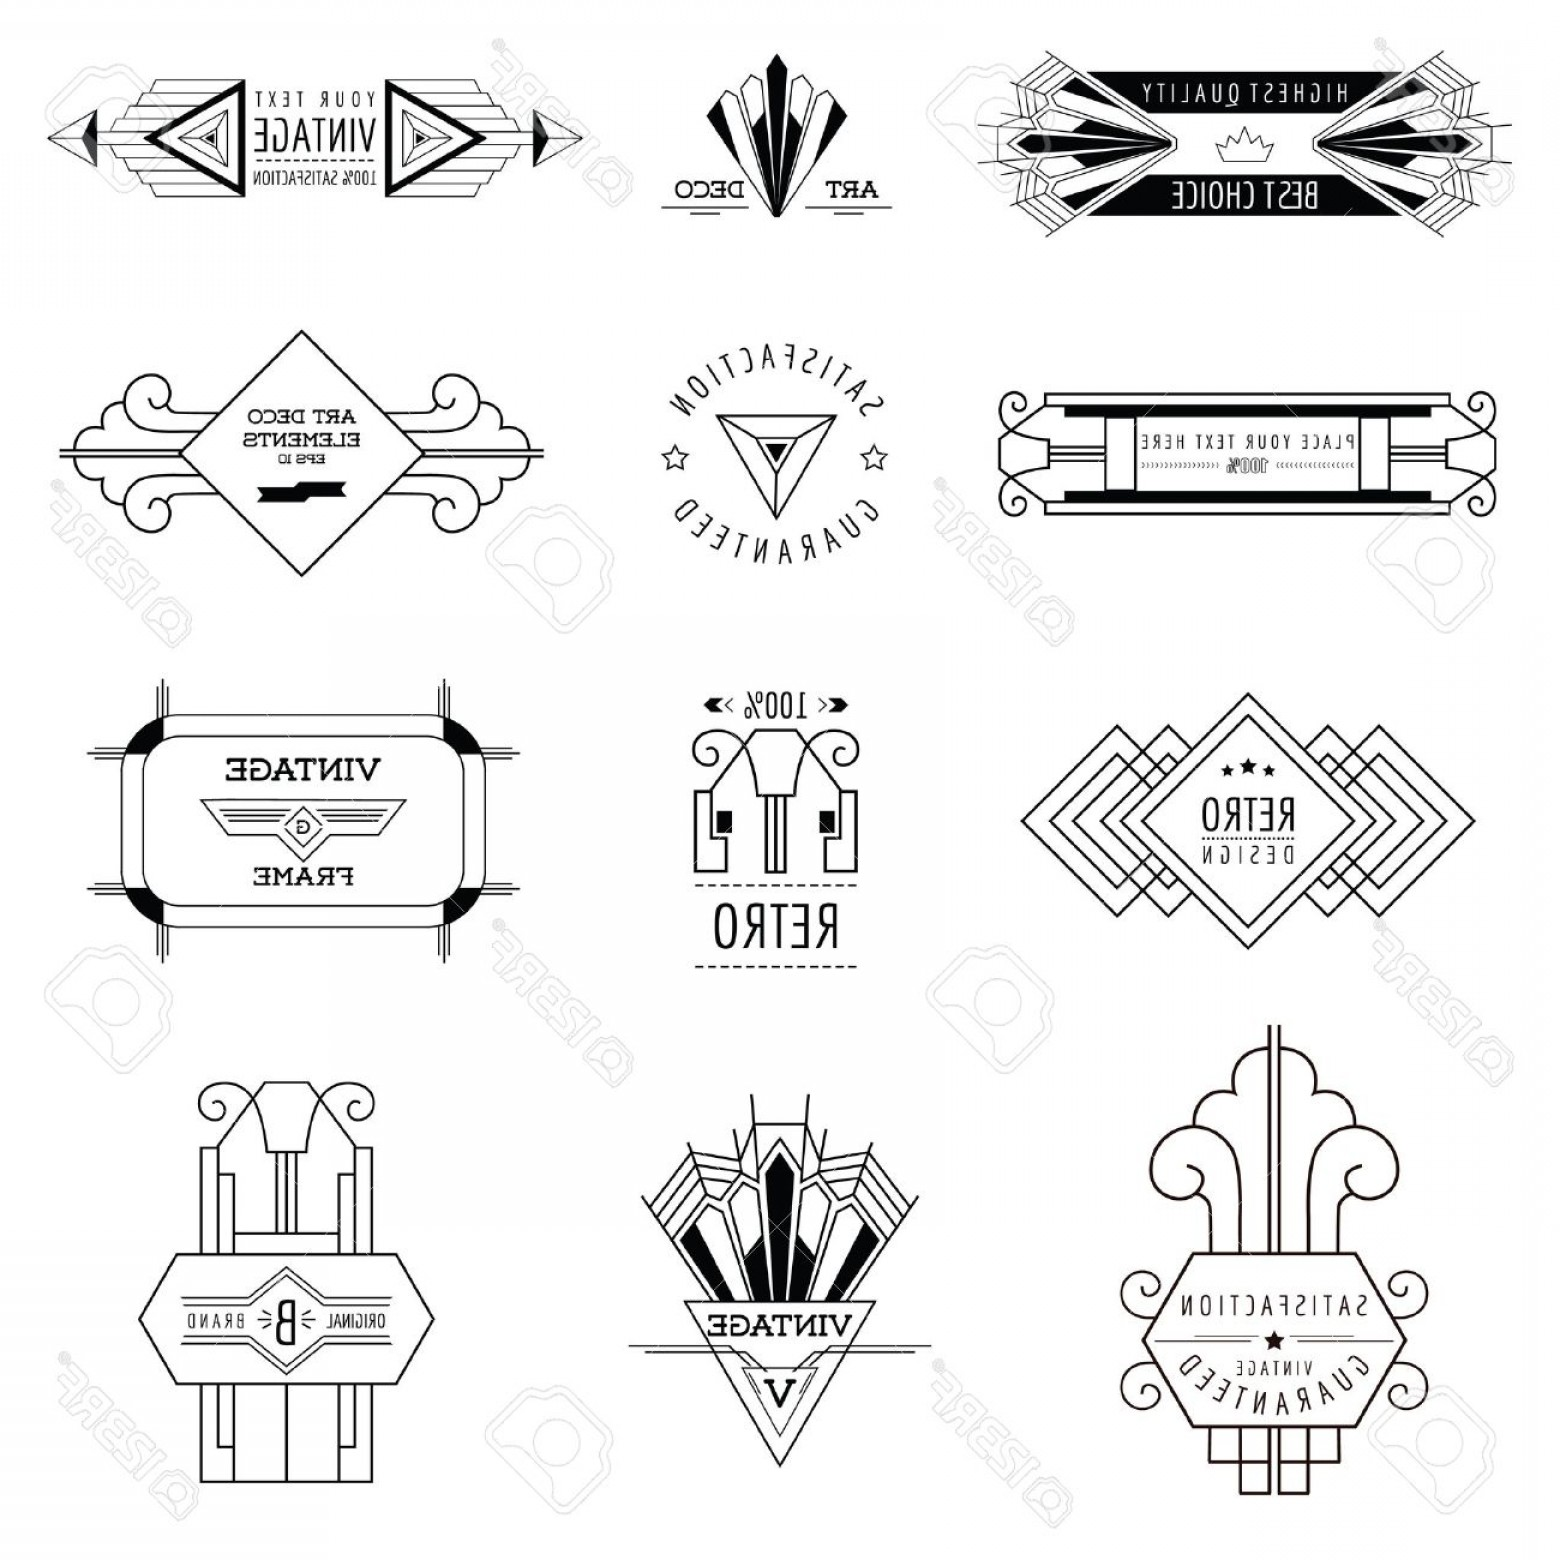 1560x1560 Photostock Vector Art Deco Vintage Frames And Design Elements In